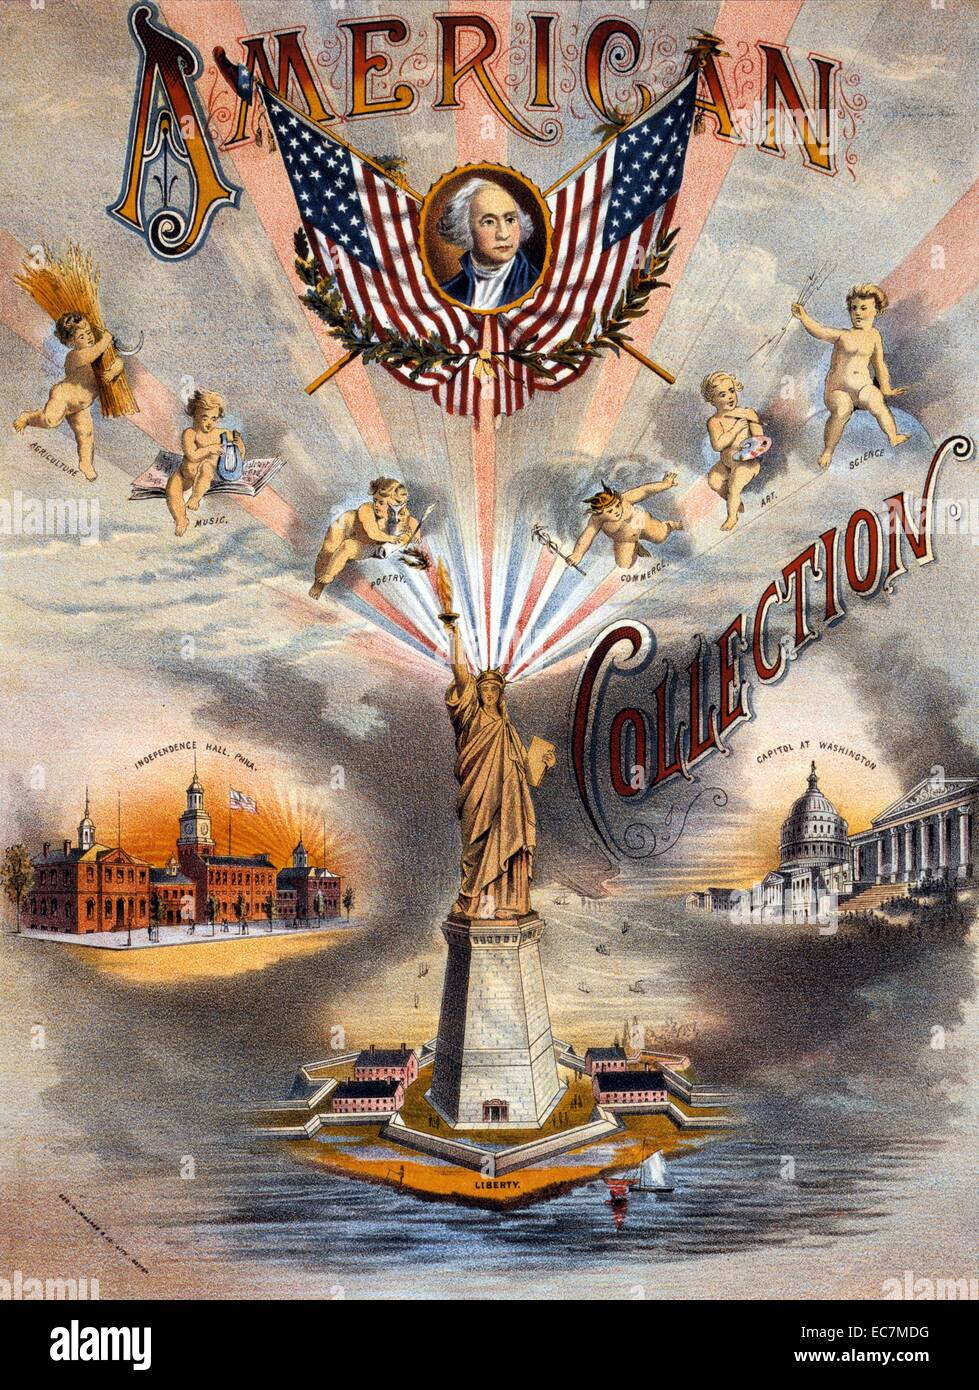 American collection. Proof with registration marks for sheet music cover for the 'American Collection' showing - Stock Image